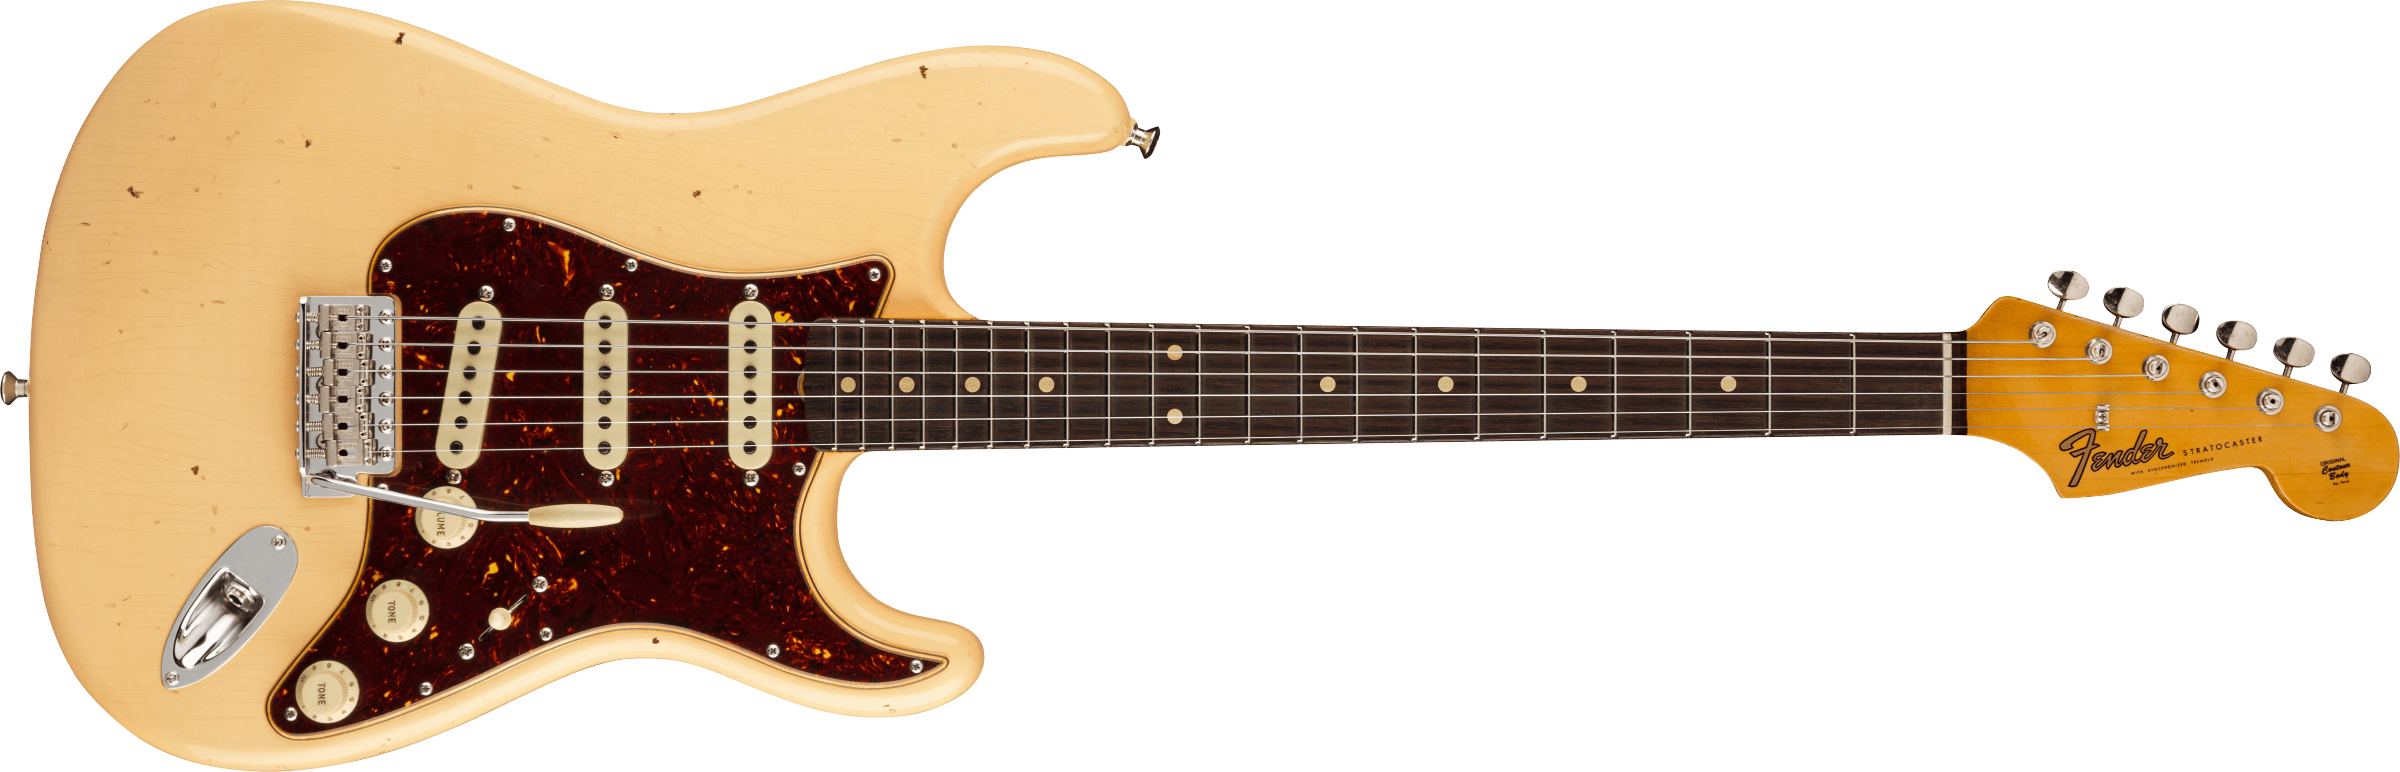 FENDER-Postmodern-Stratocaster-Journeyman-Relic-with-Closet-Classic-Hardware-Rosewood-Fingerboard-Aged-Vintage-White-sku-571005417